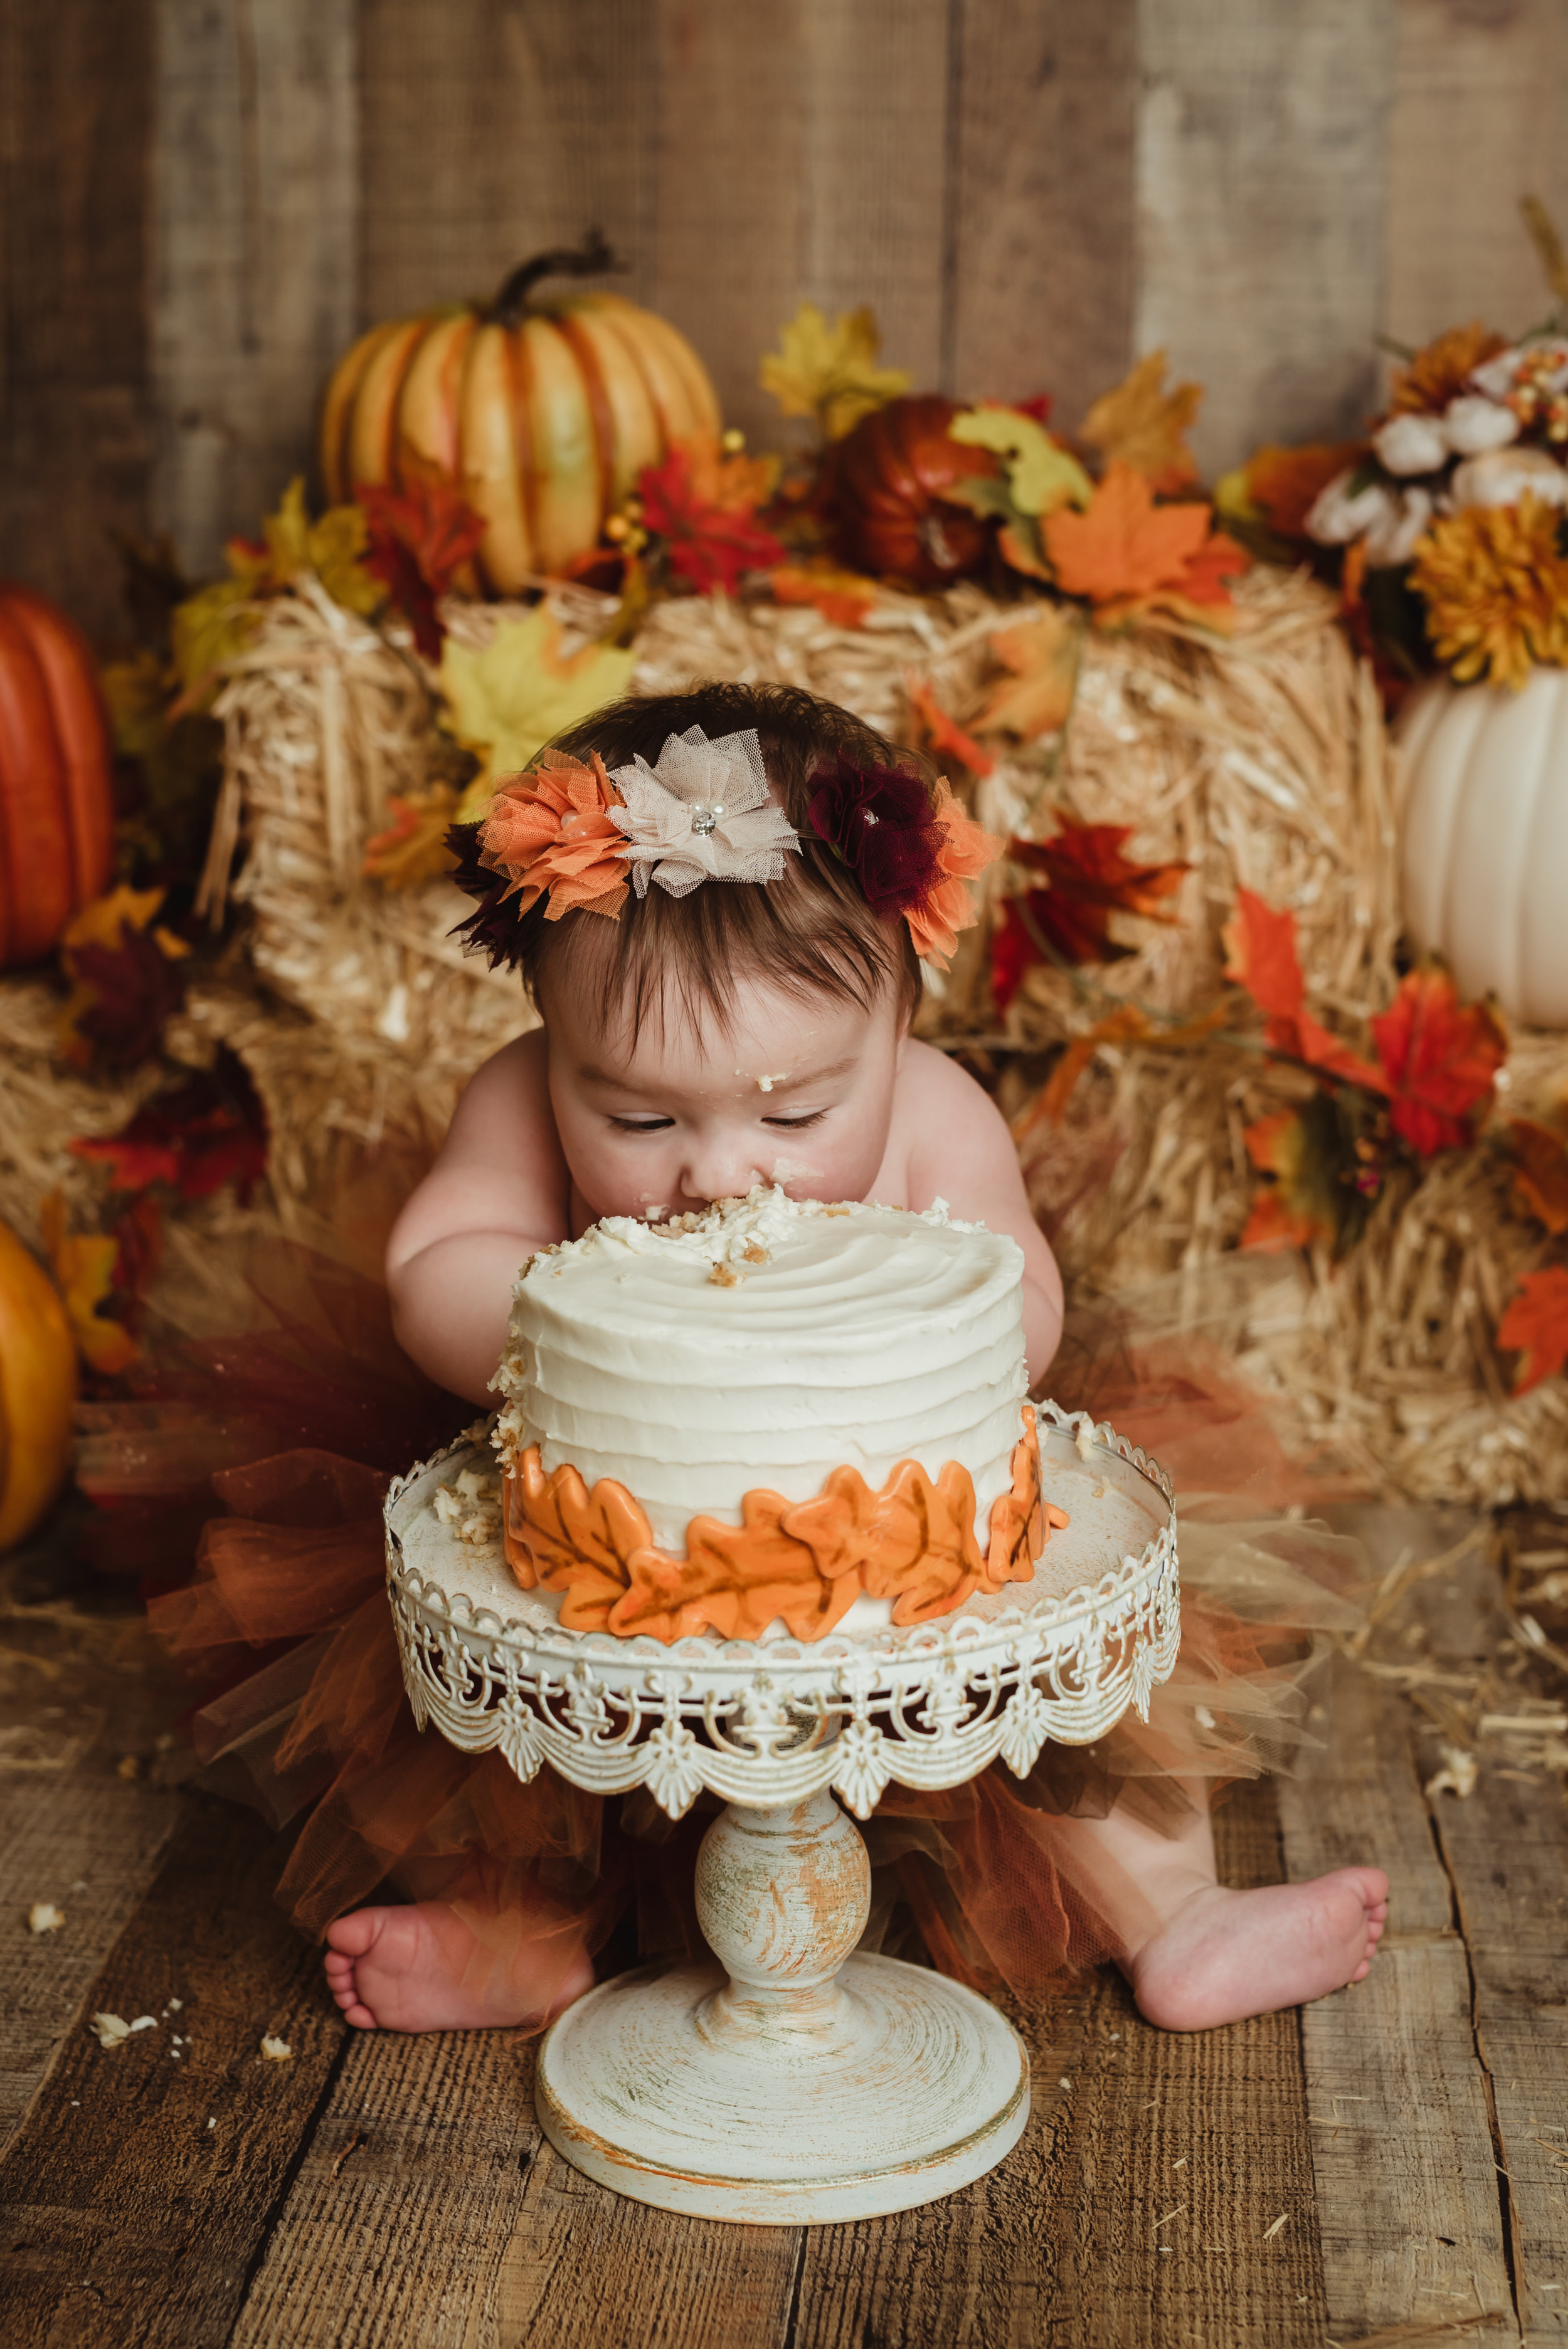 little girl with a fall theme eating her cake face first with junebug photography studio in manhattan, ks